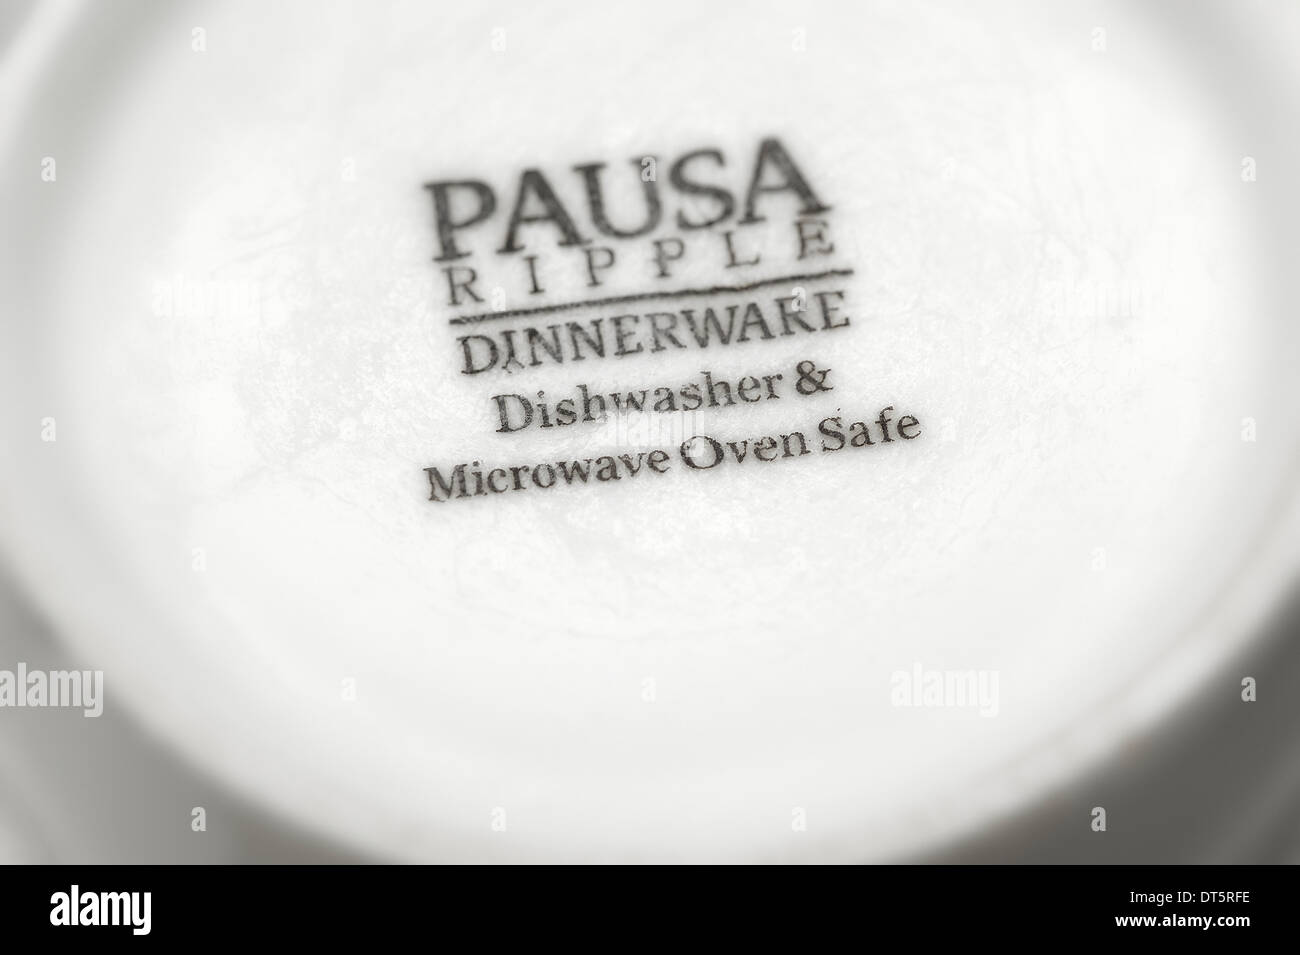 https www alamy com pausa ripple dinnerware dishwasher and microwave oven safe image66511074 html